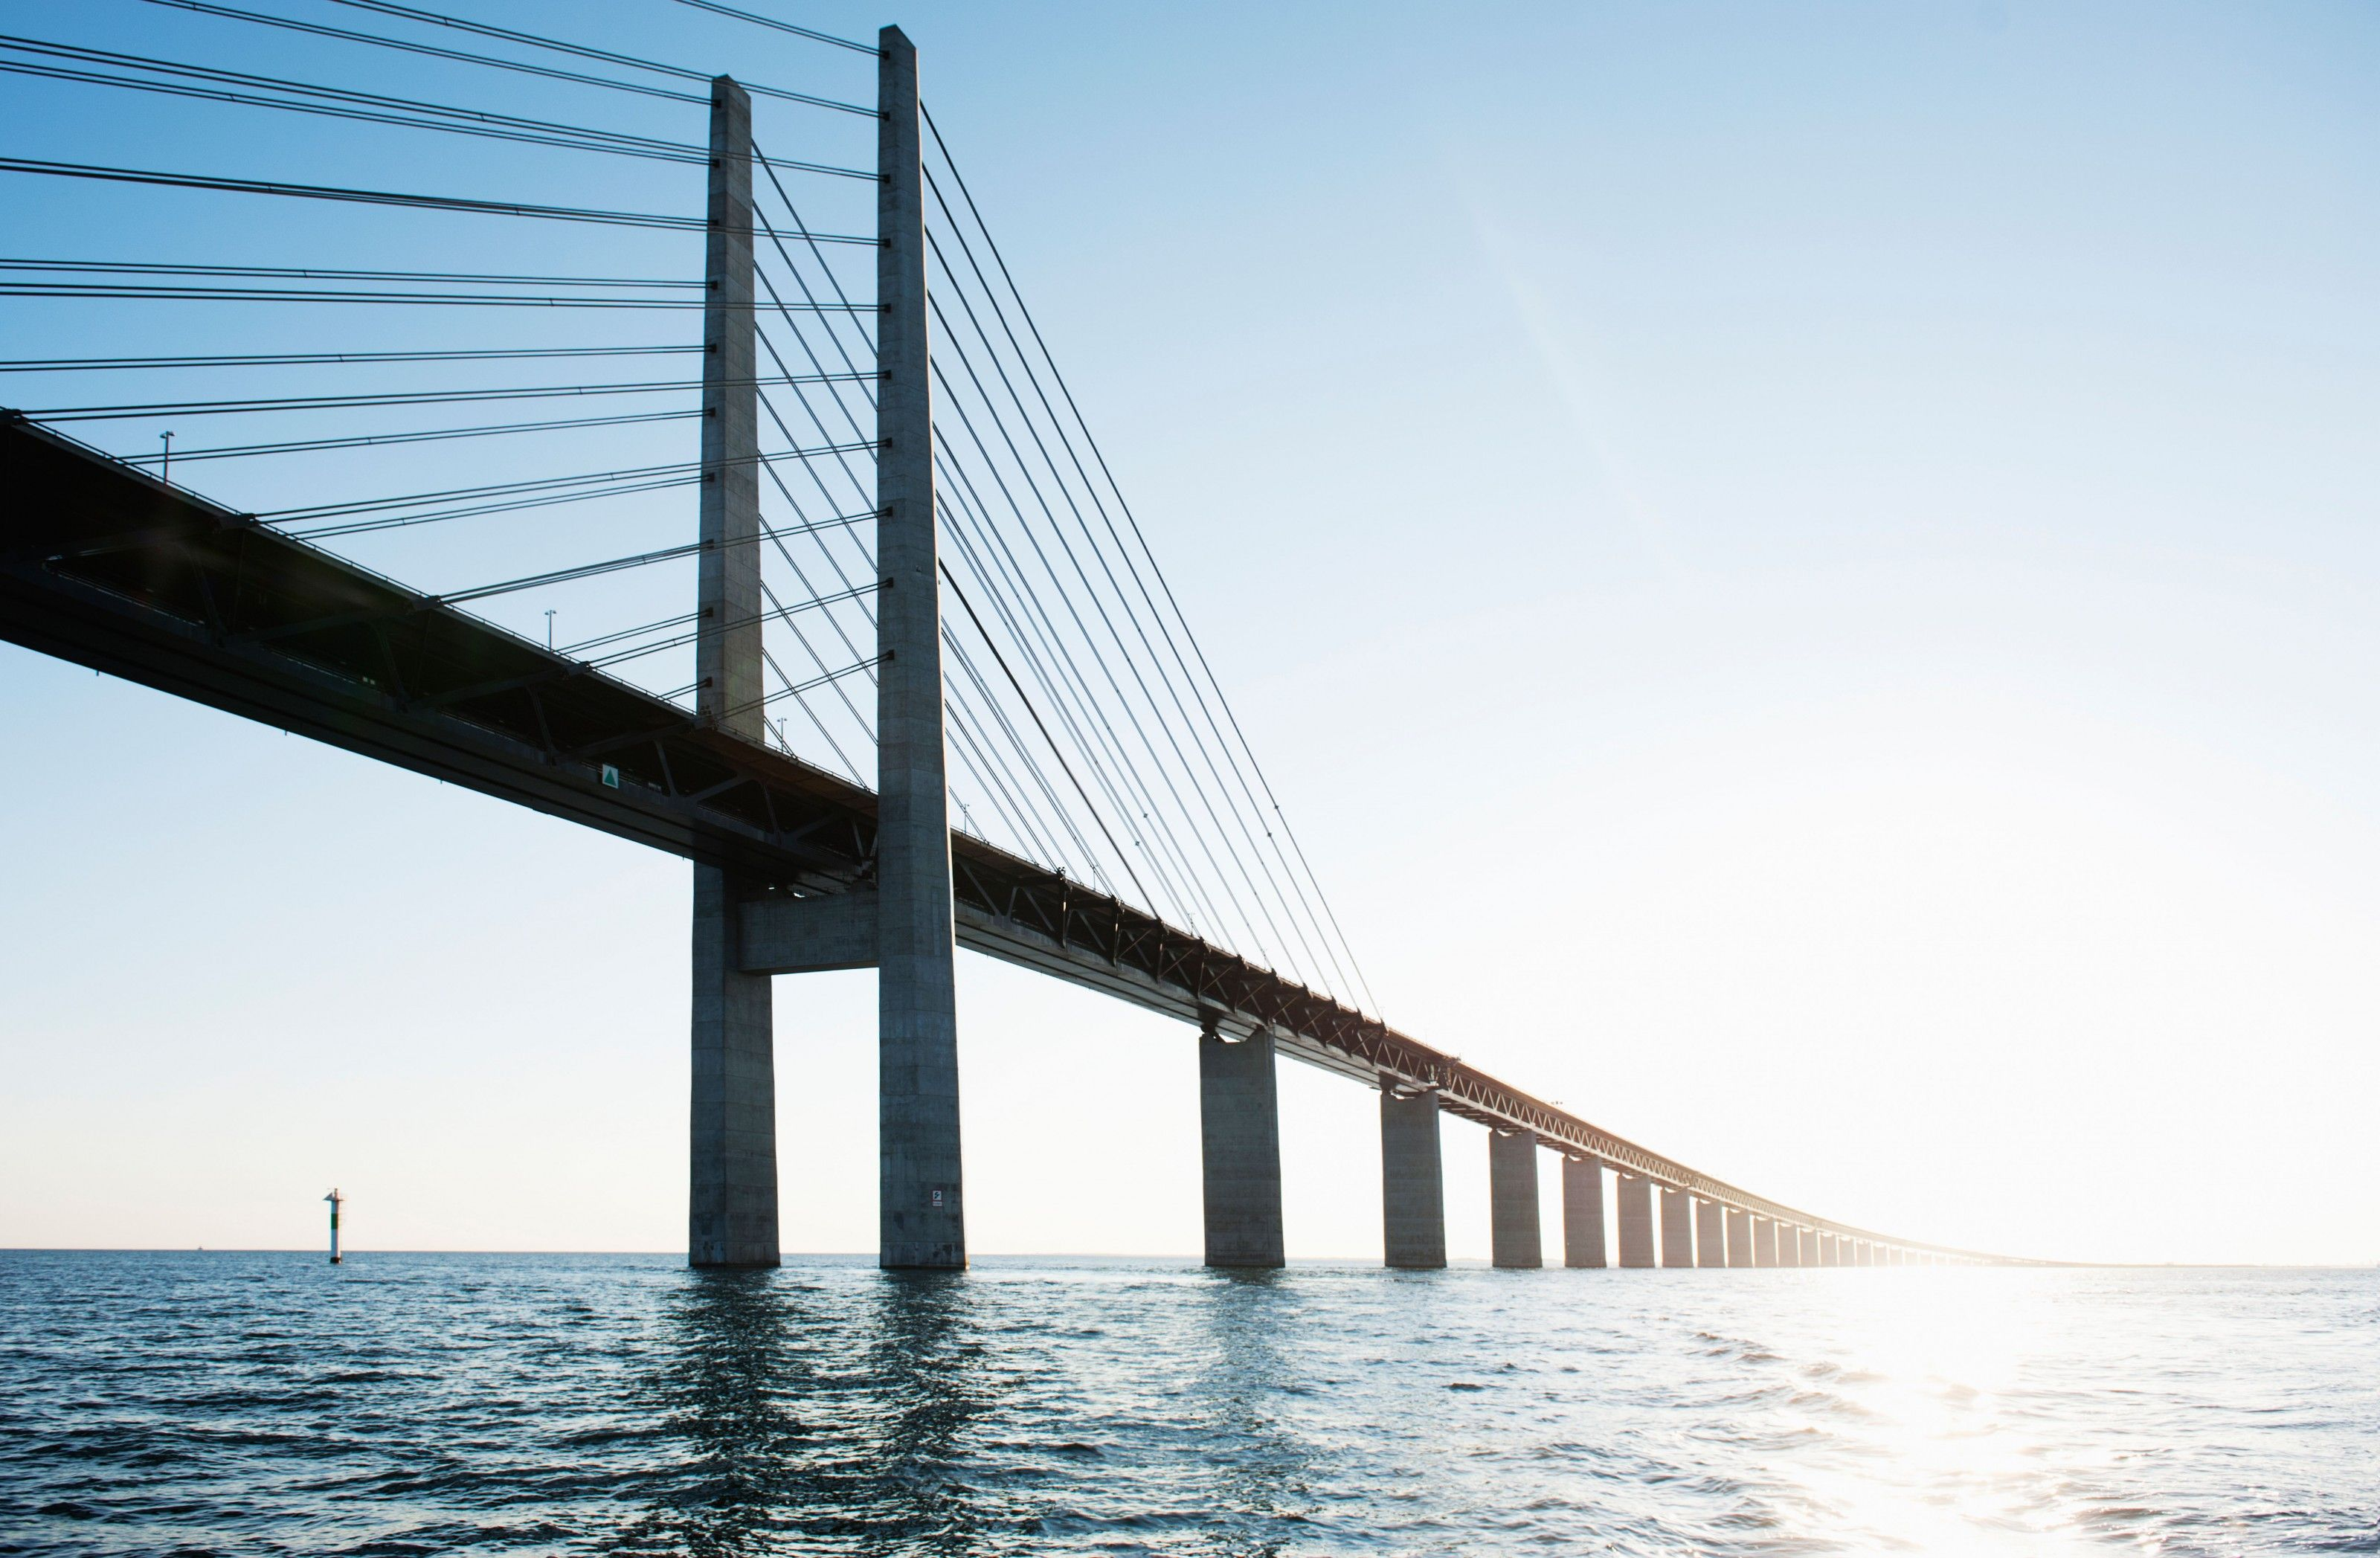 A bridge between Scotland and Northern Ireland: what would it be like? | National Geographic